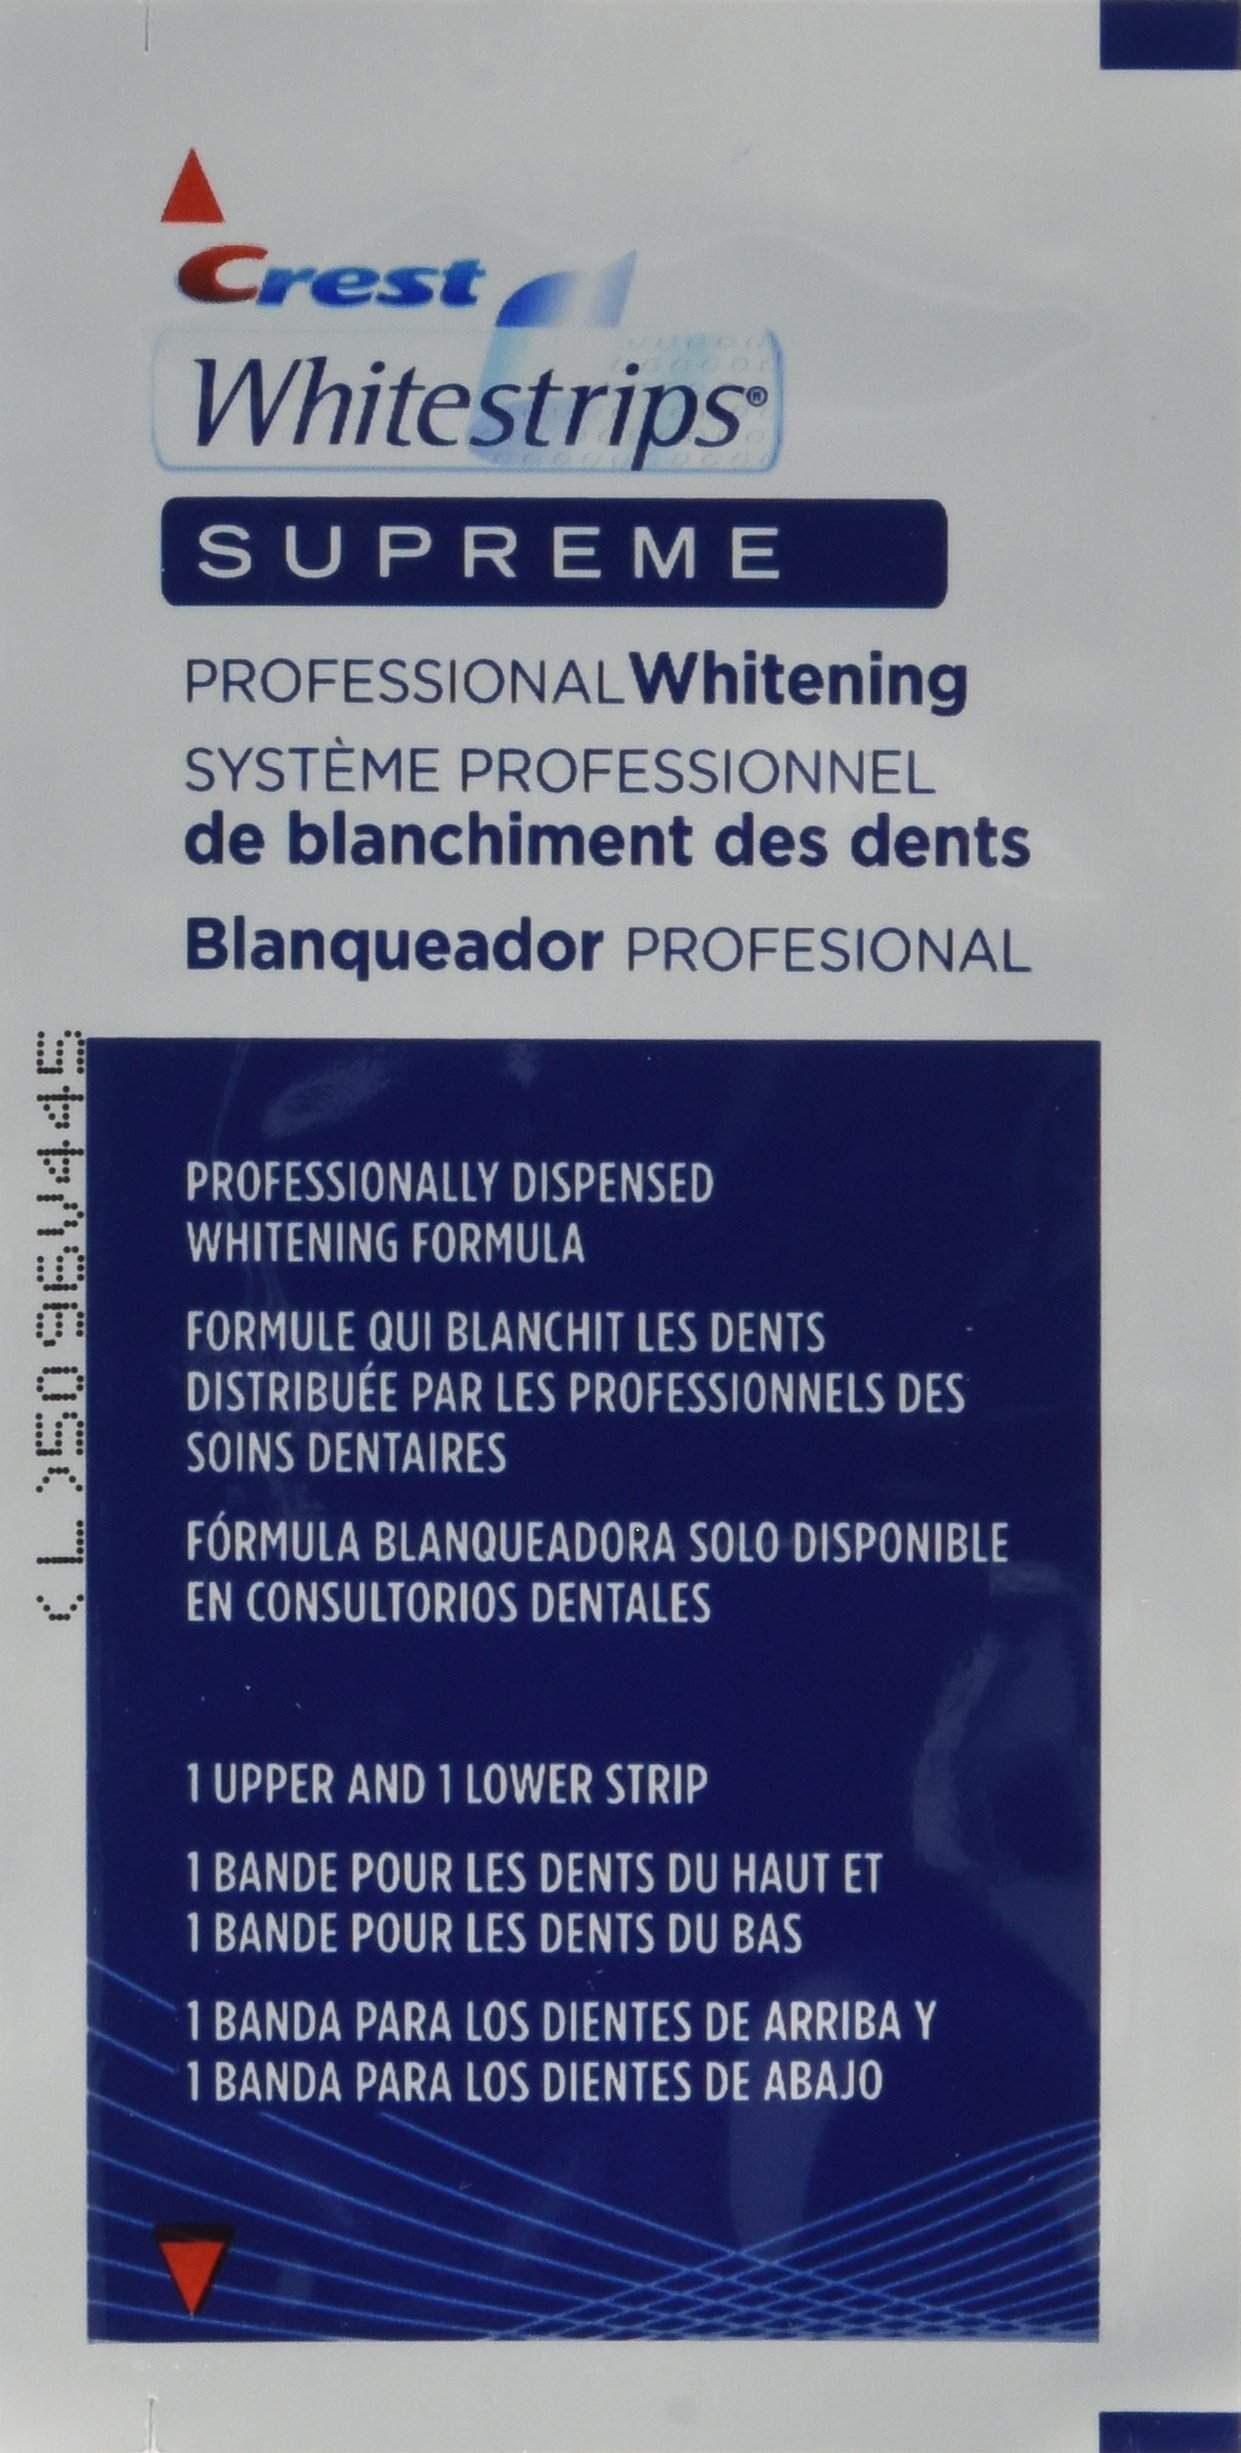 Crest Whitestrips Supreme Professional Whitening 84 strips by Crest (Image #1)